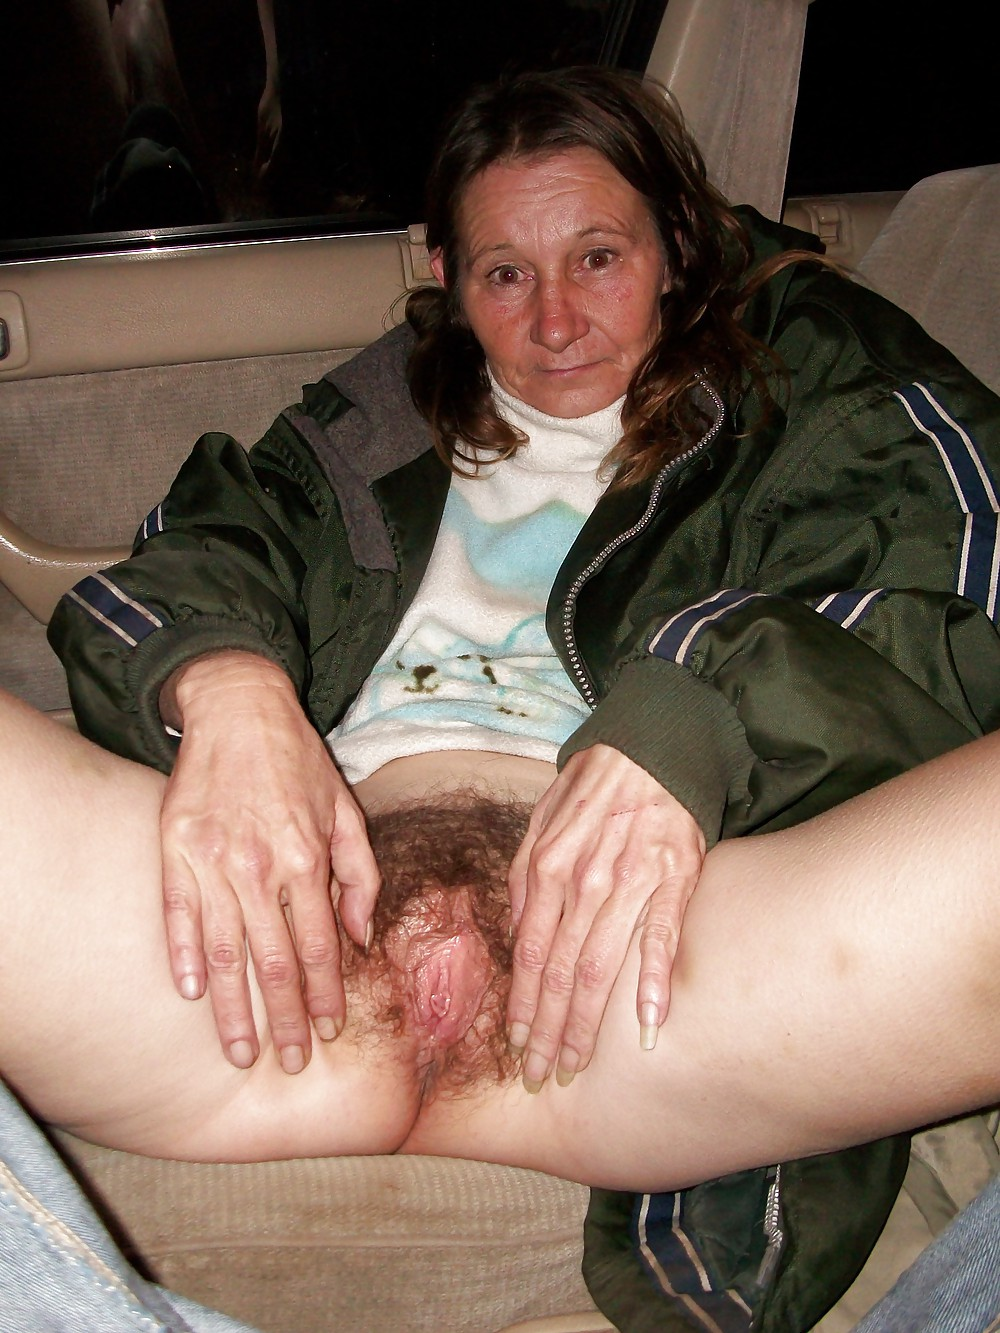 naked crack whore pics